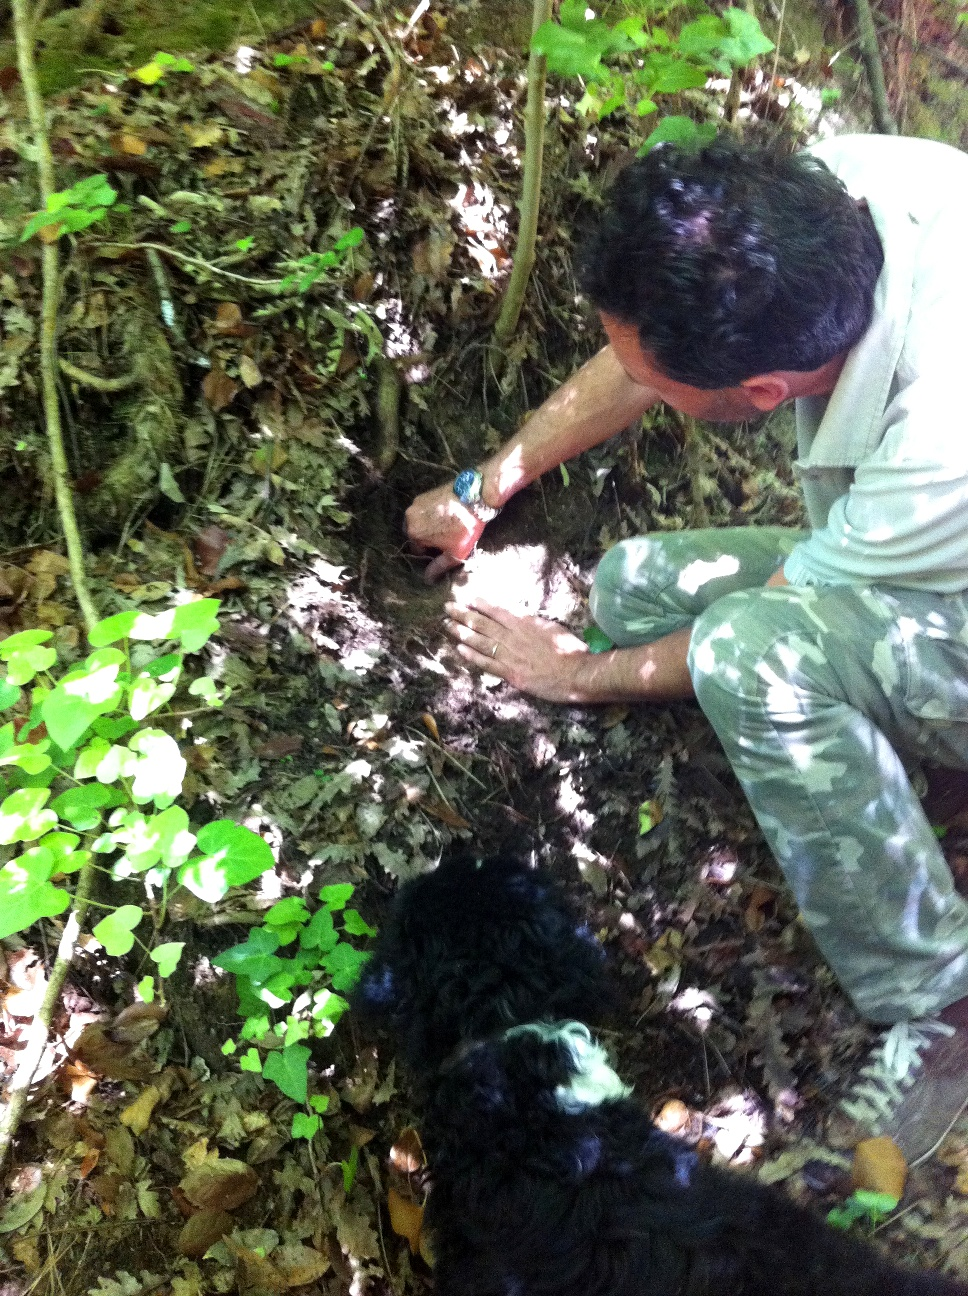 Extracting the truffle